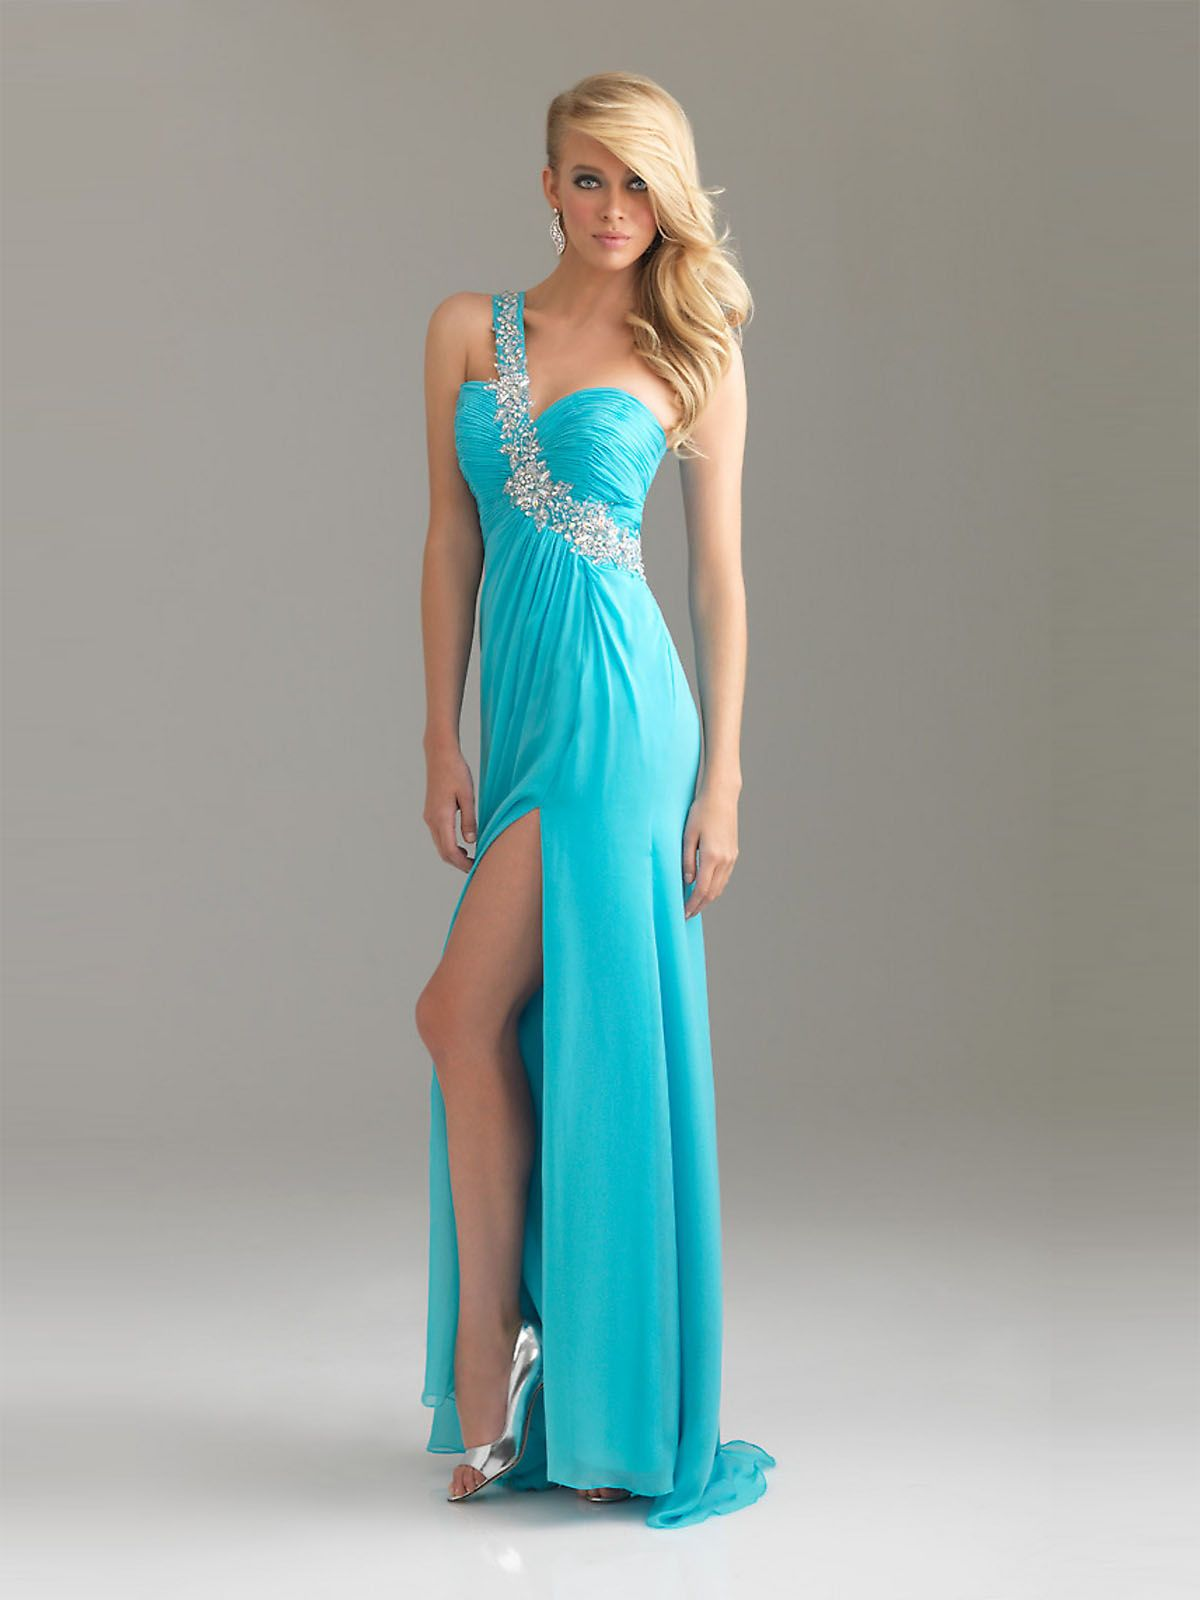 Long prom dresses 2012 tumblr bing images long prom dress long prom dresses 2012 tumblr bing images ombrellifo Gallery